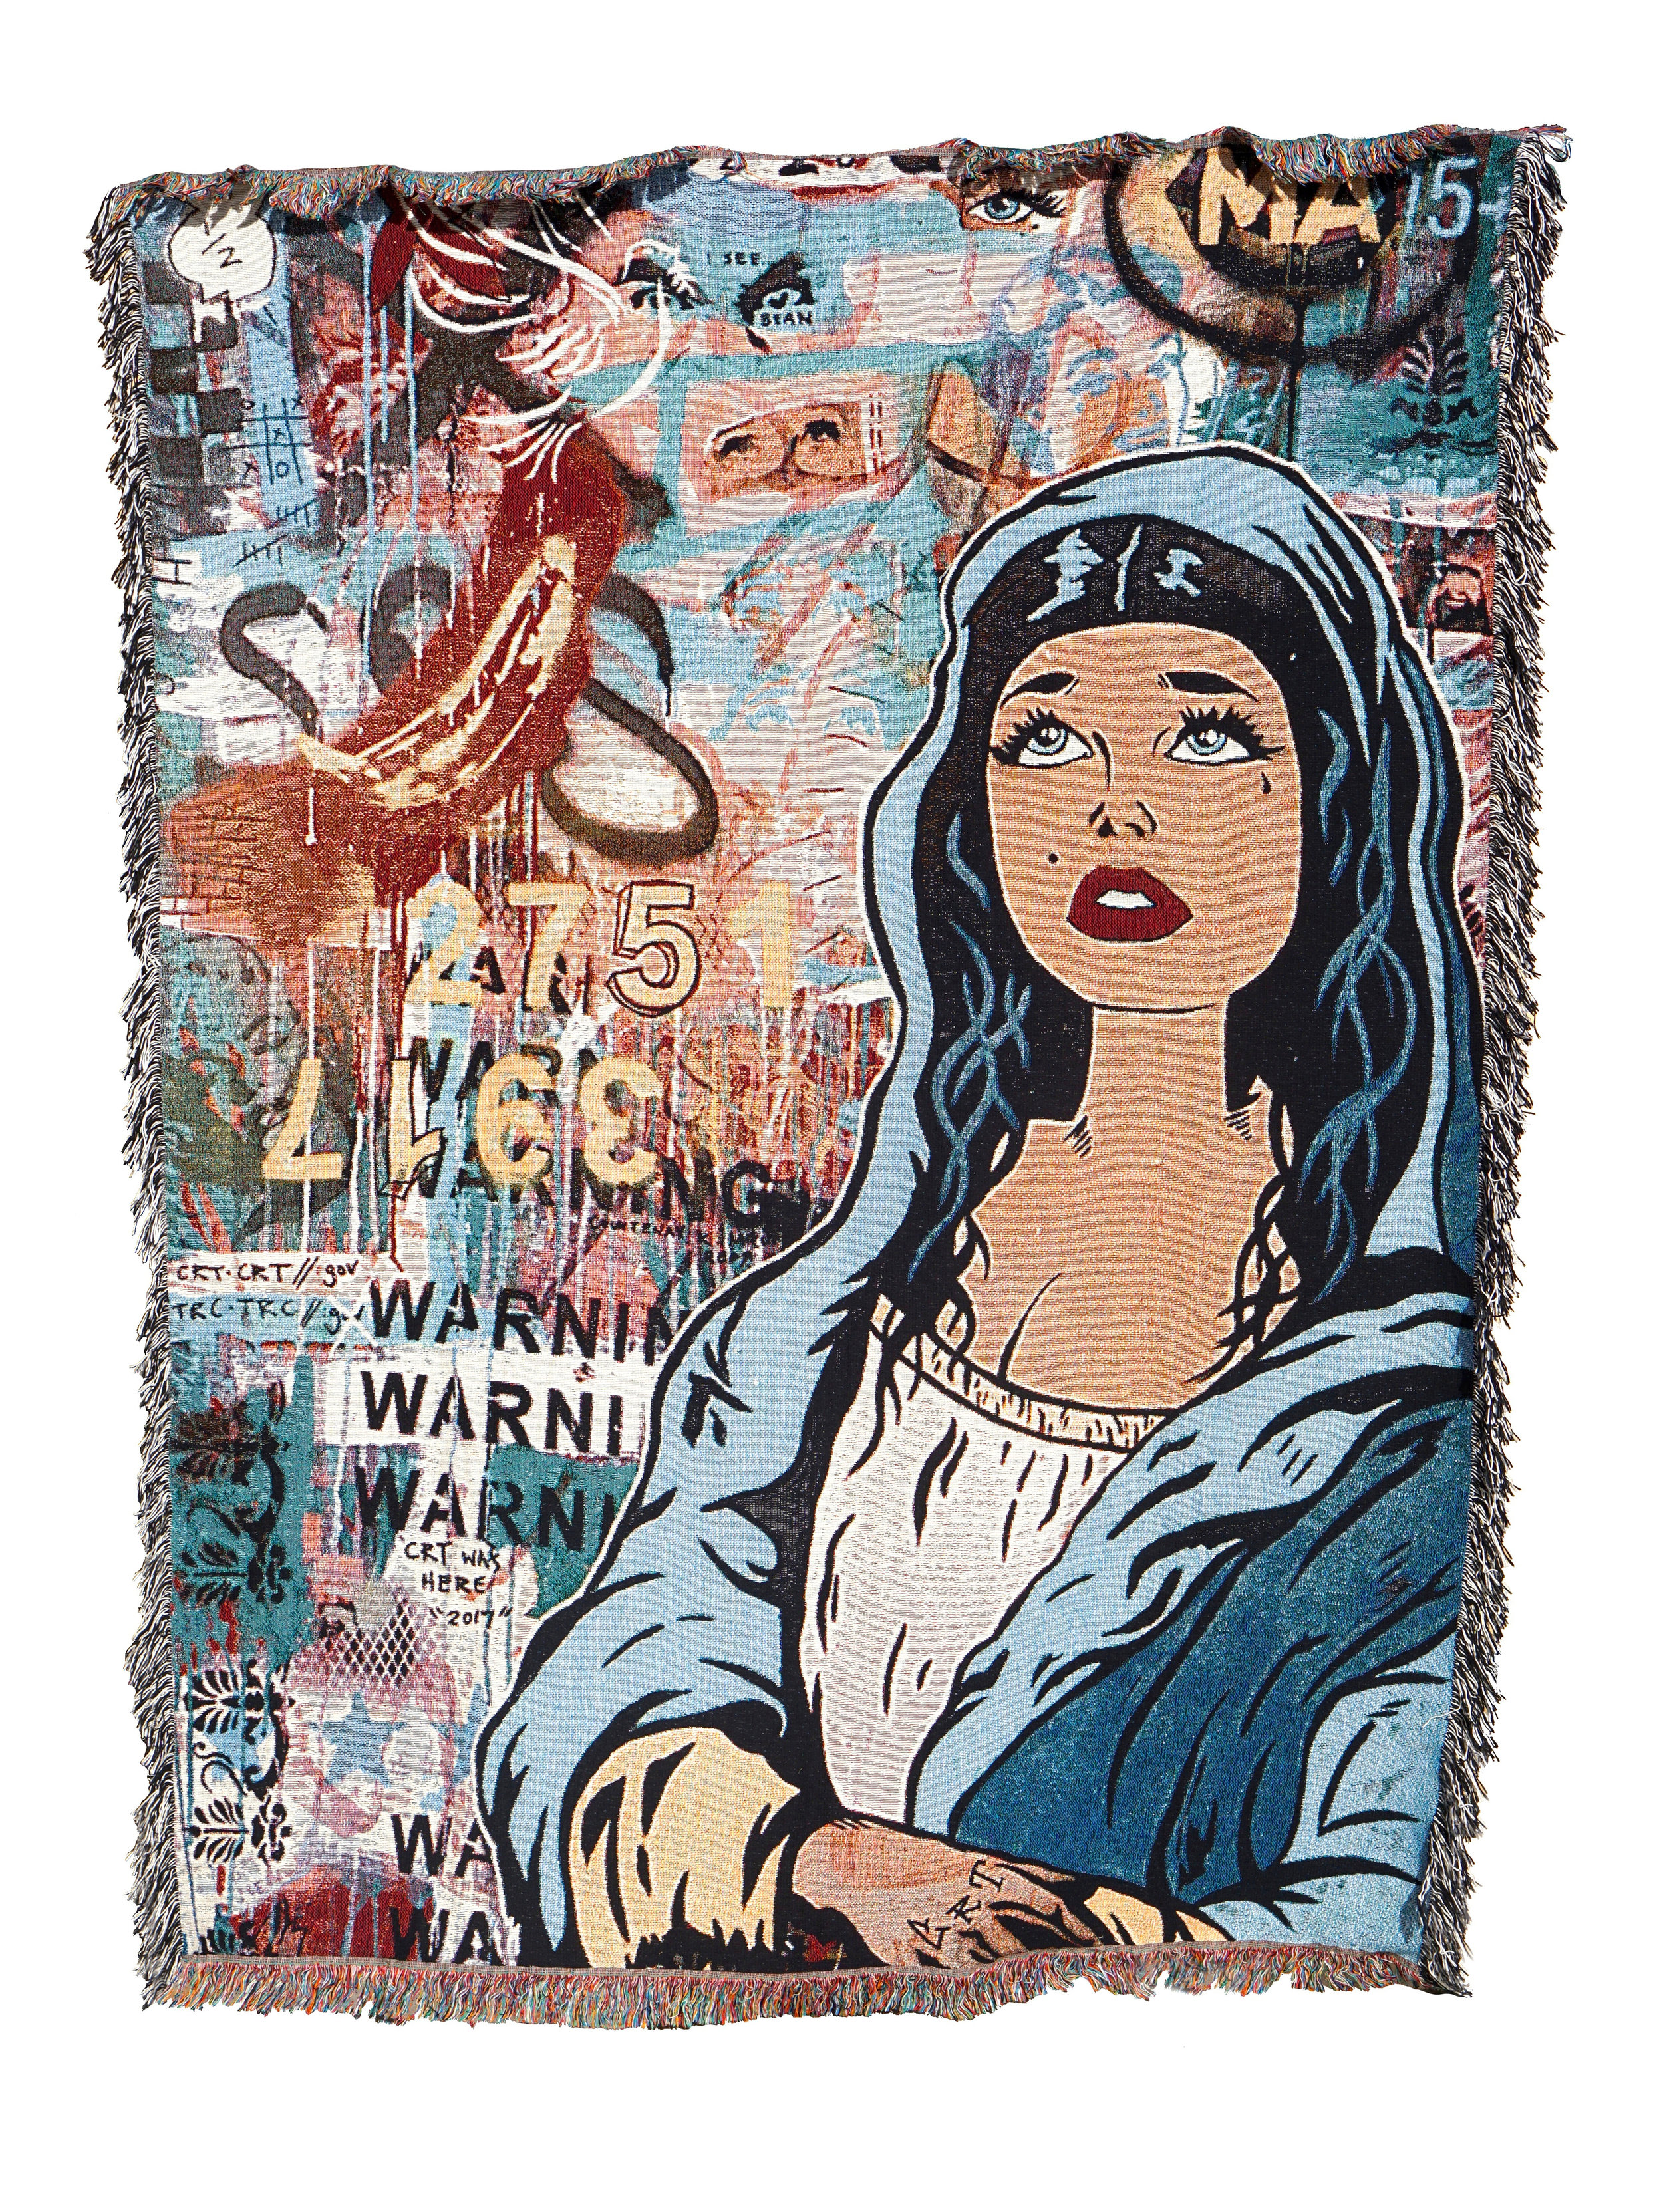 'Dusty Angel' Rug     'A Billionaire's Guide to Immortality'   152cm x 203cm 100% Cotton, Woven Rug printed 2018  Sold